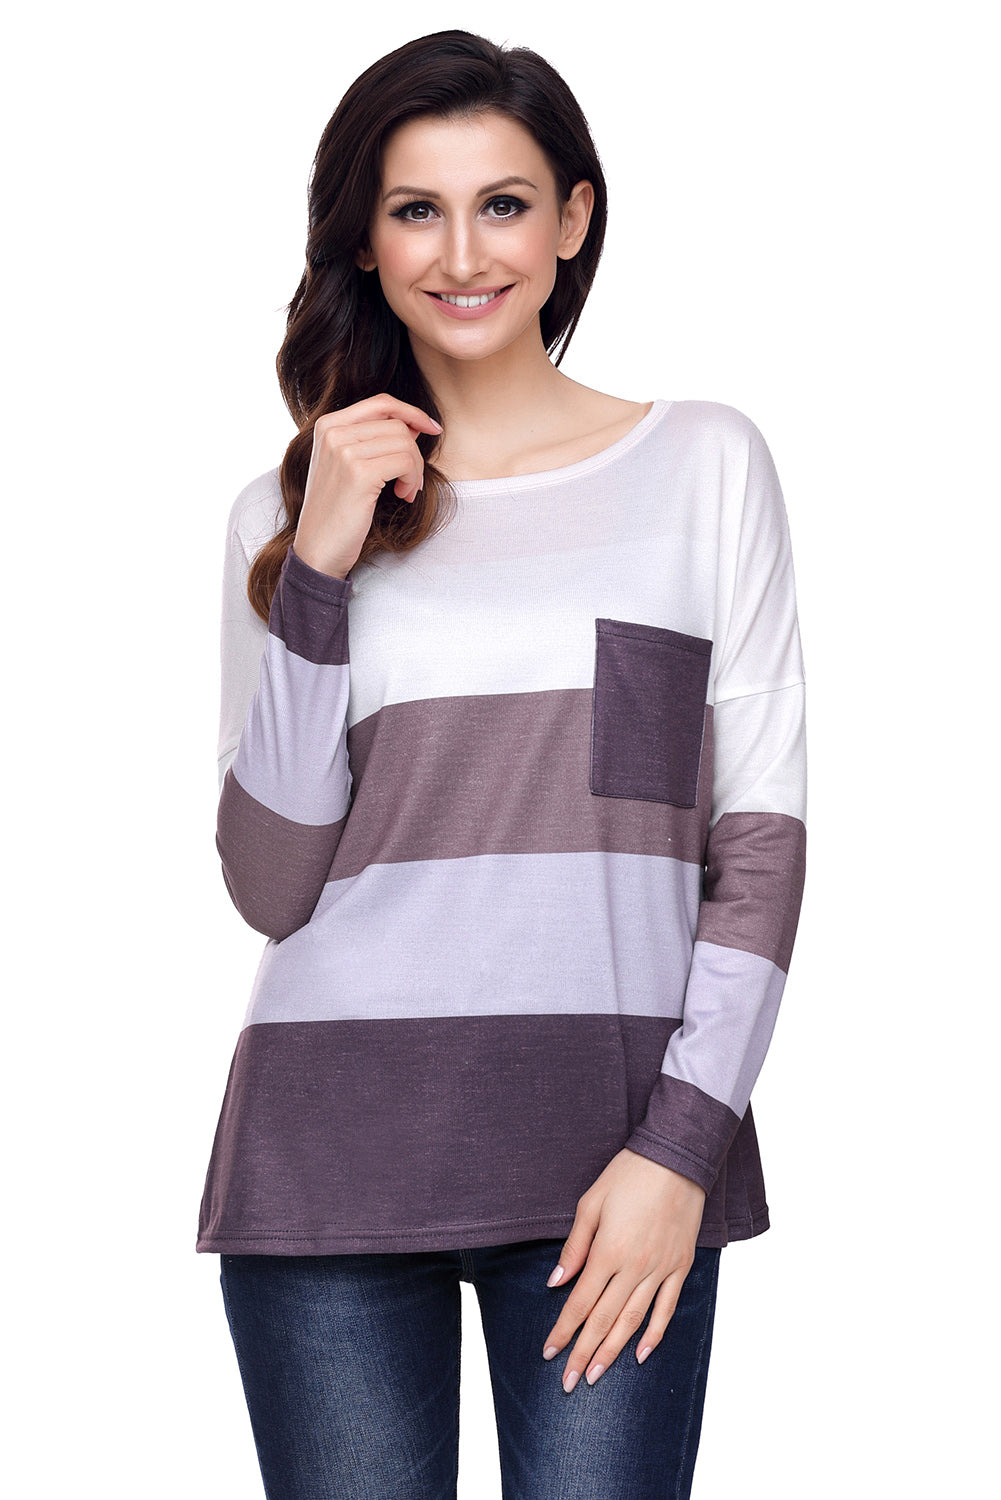 Chicloth Coffee Tan Colorblock Pocket Pullover Tunic Top